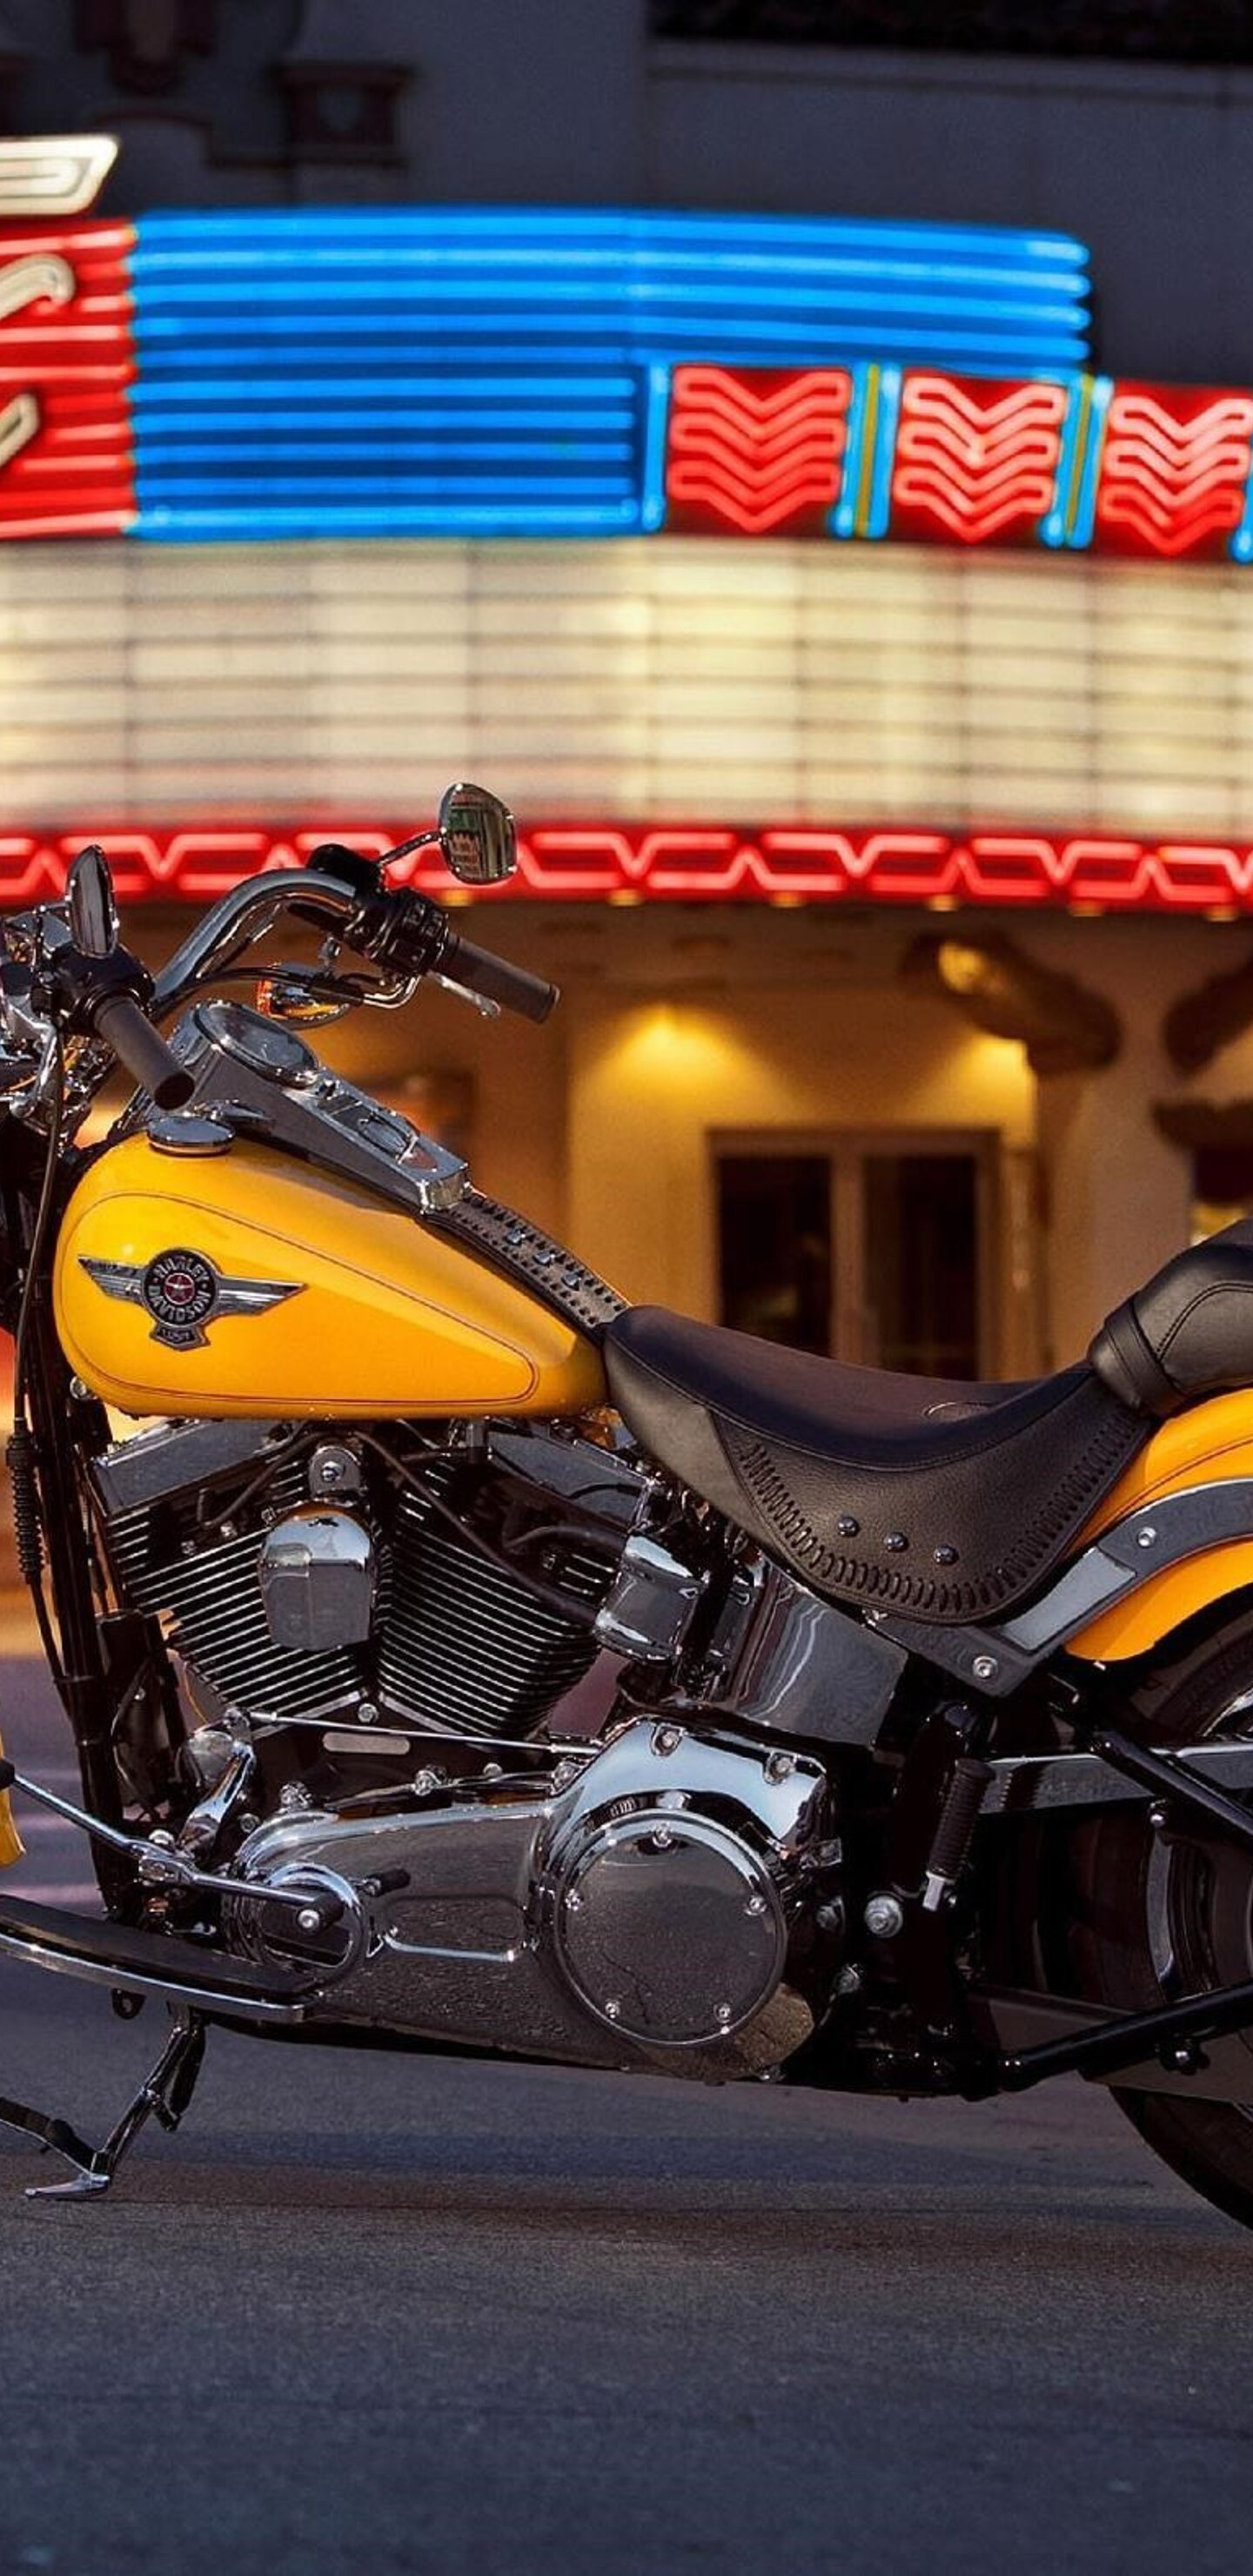 1440x2960 Harley Davidson Fat Boy Samsung Galaxy Note 9 8 S9 S8 S8 Qhd Hd 4k Wallpapers Images Backgrounds Photos And Pictures